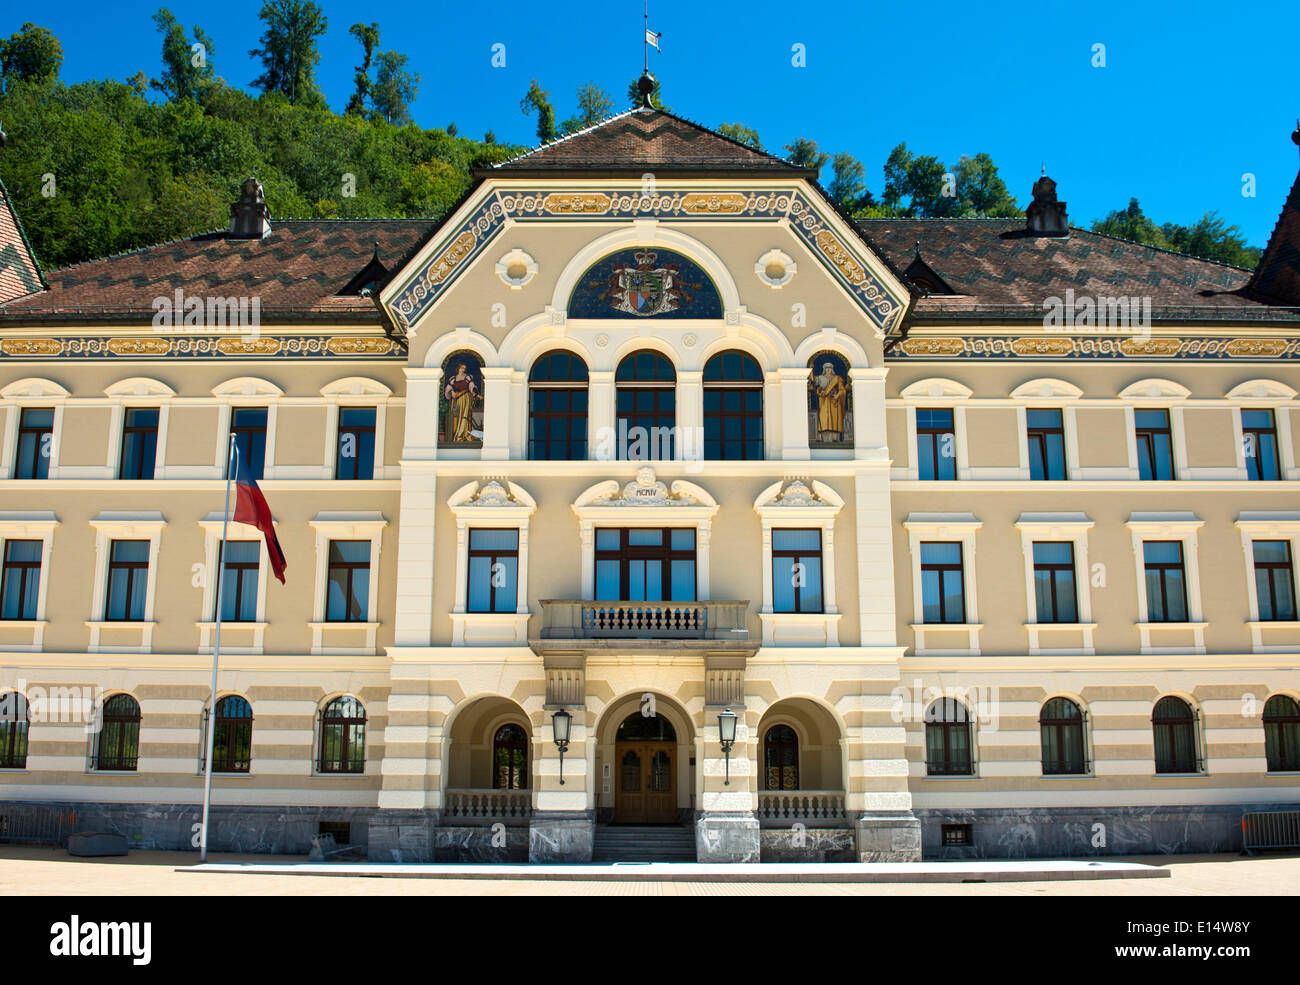 Government building of the Principality of Liechtenstein, Vaduz, Principality of Liechtenstein - Stock Image